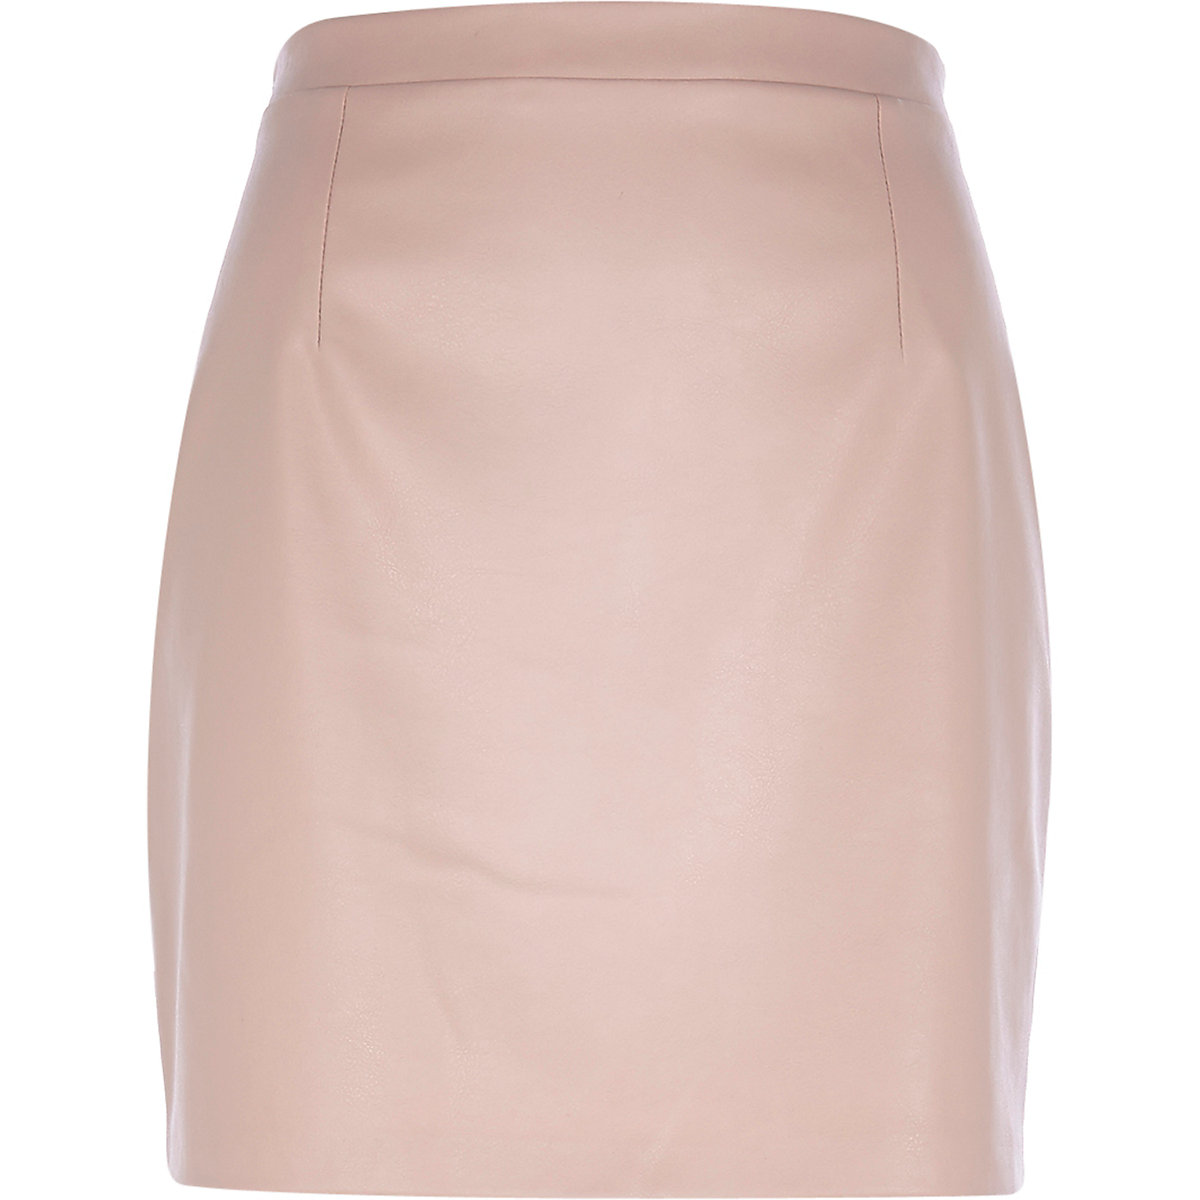 Light pink leather-look mini skirt